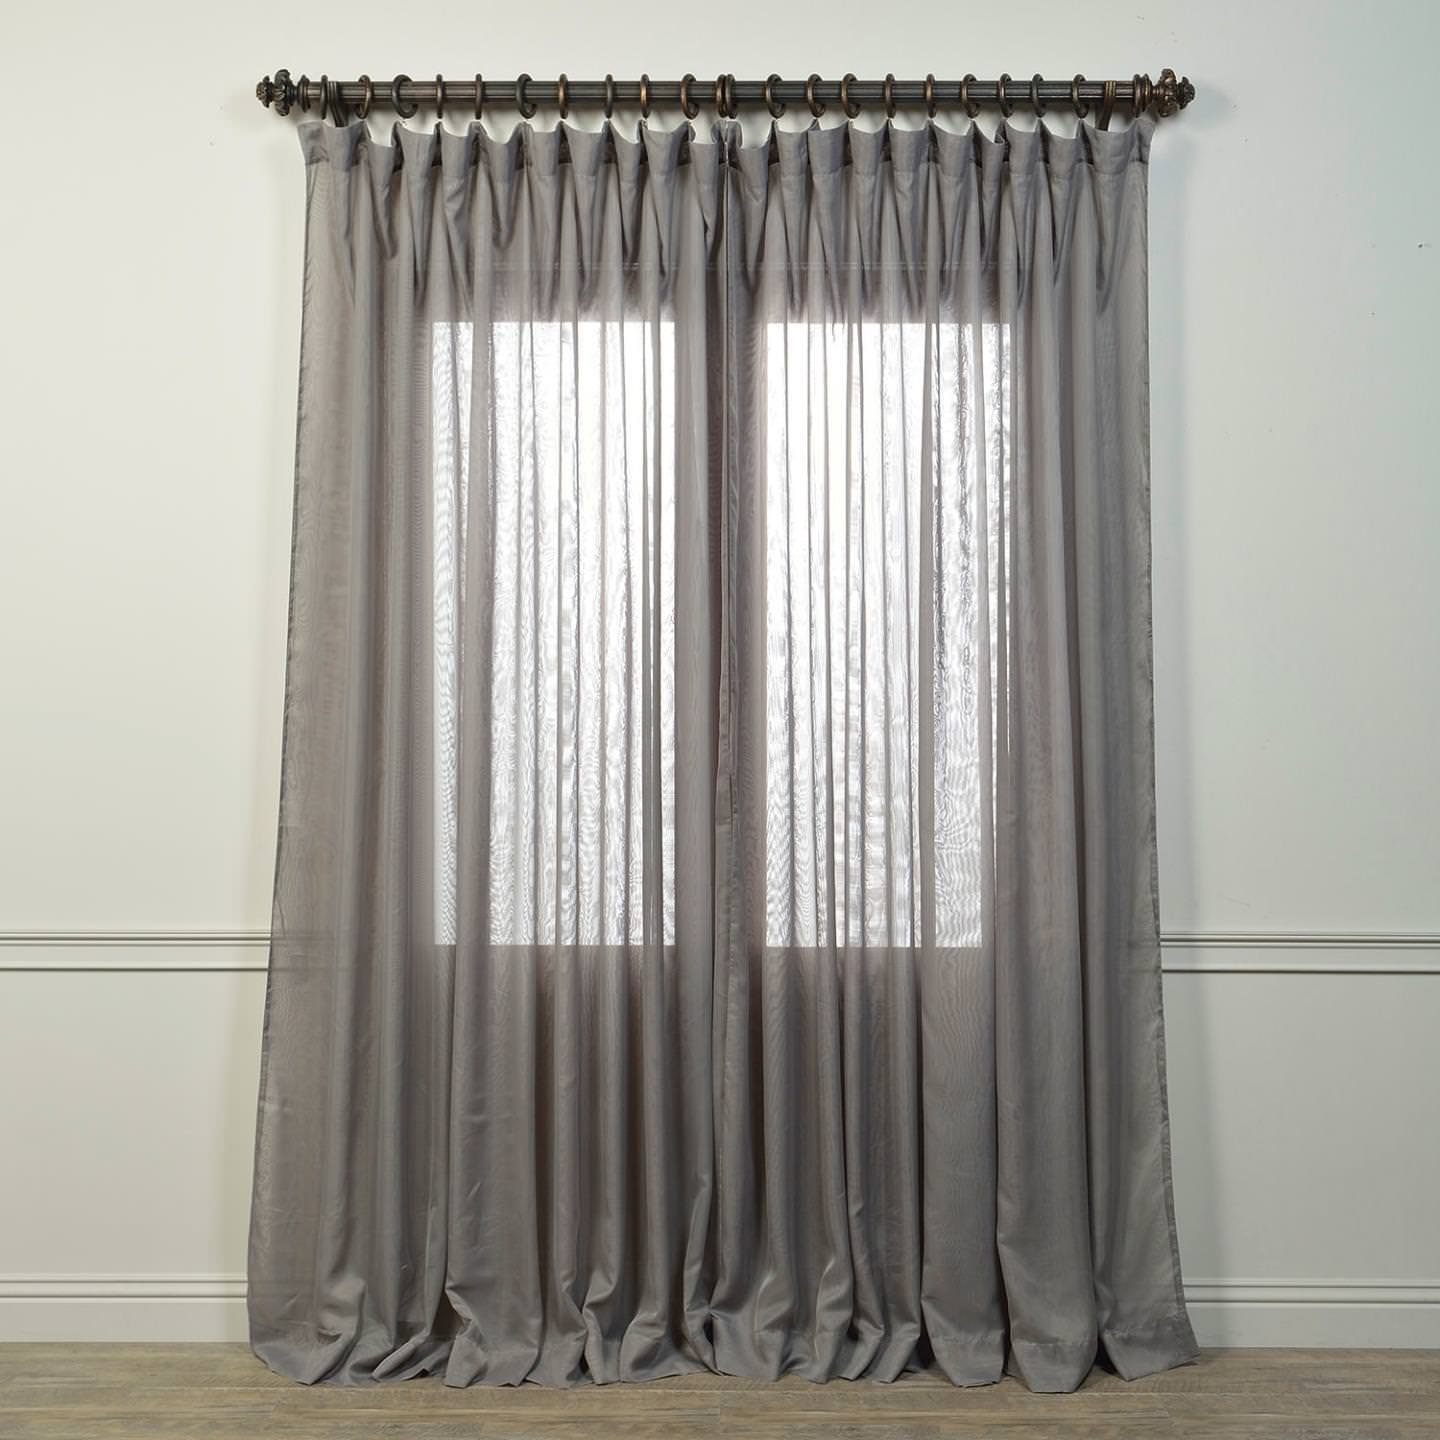 curtain ideas best picture on wide windows curtains for pinterest window